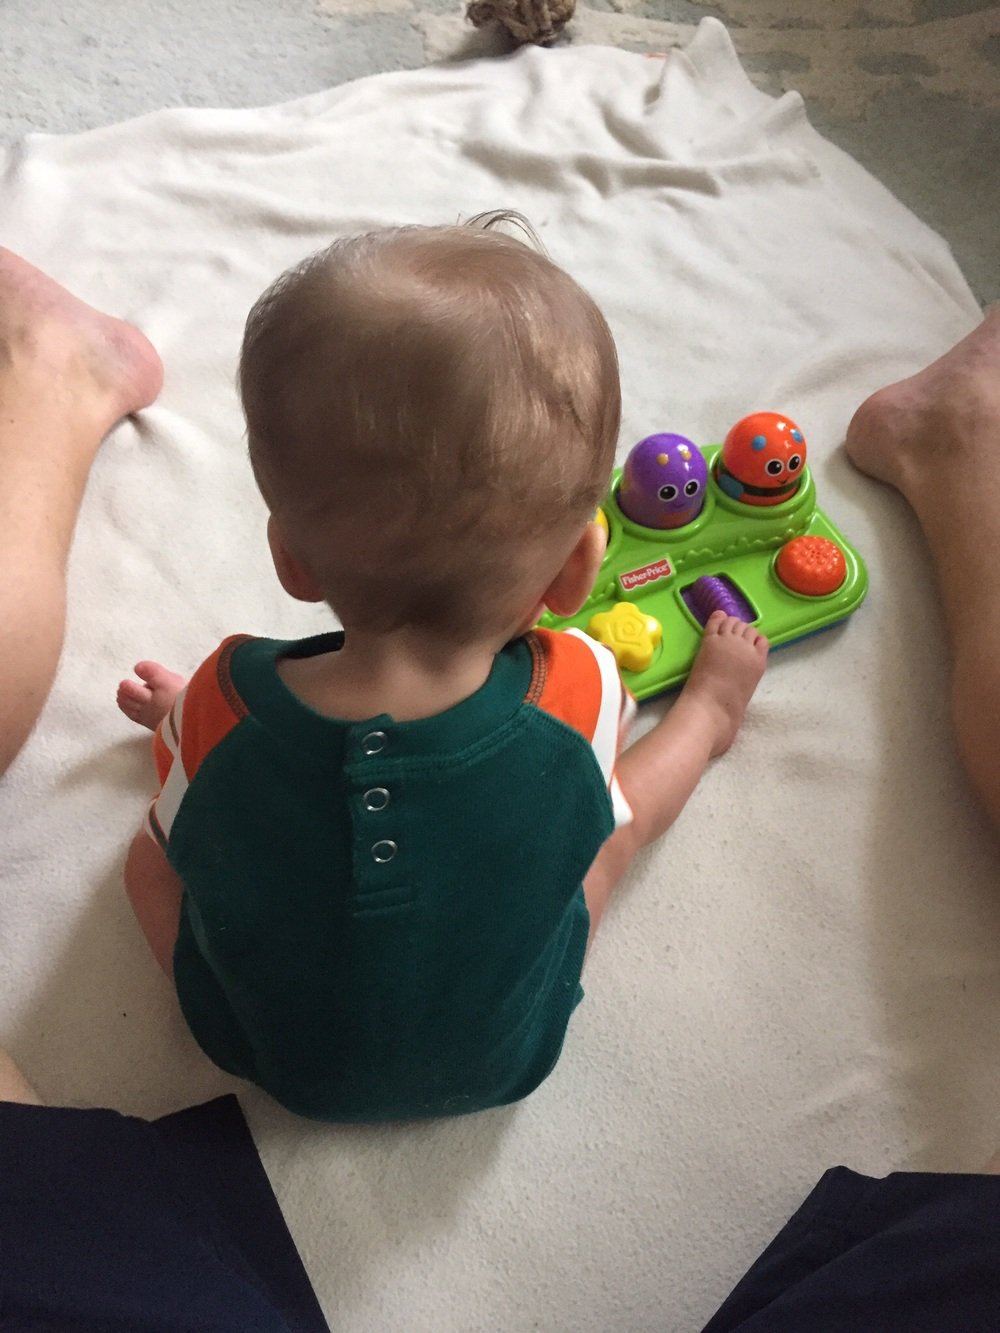 Starting to sit up and play!